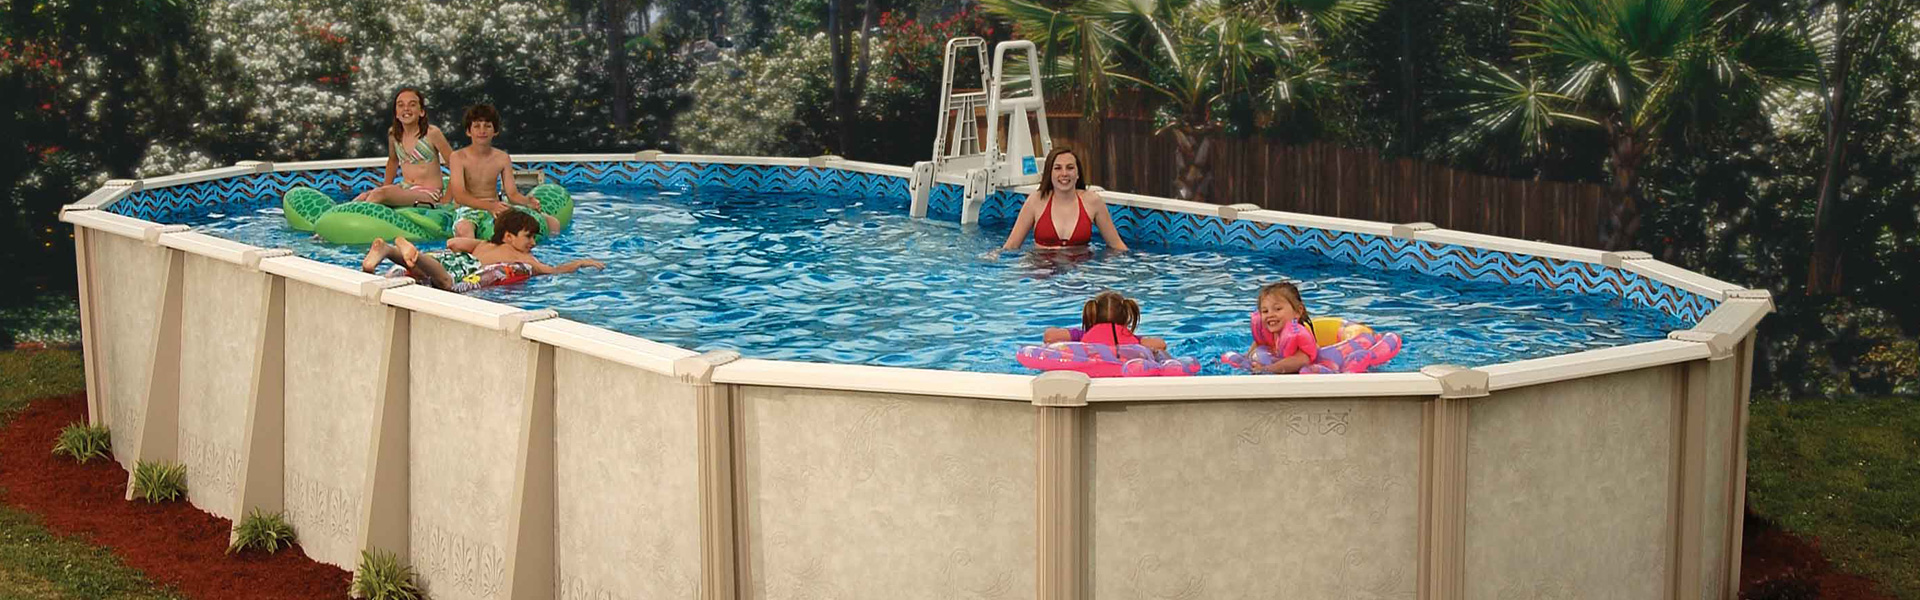 Doughboy Pools Brazos Valley Pool And Hot Tubs